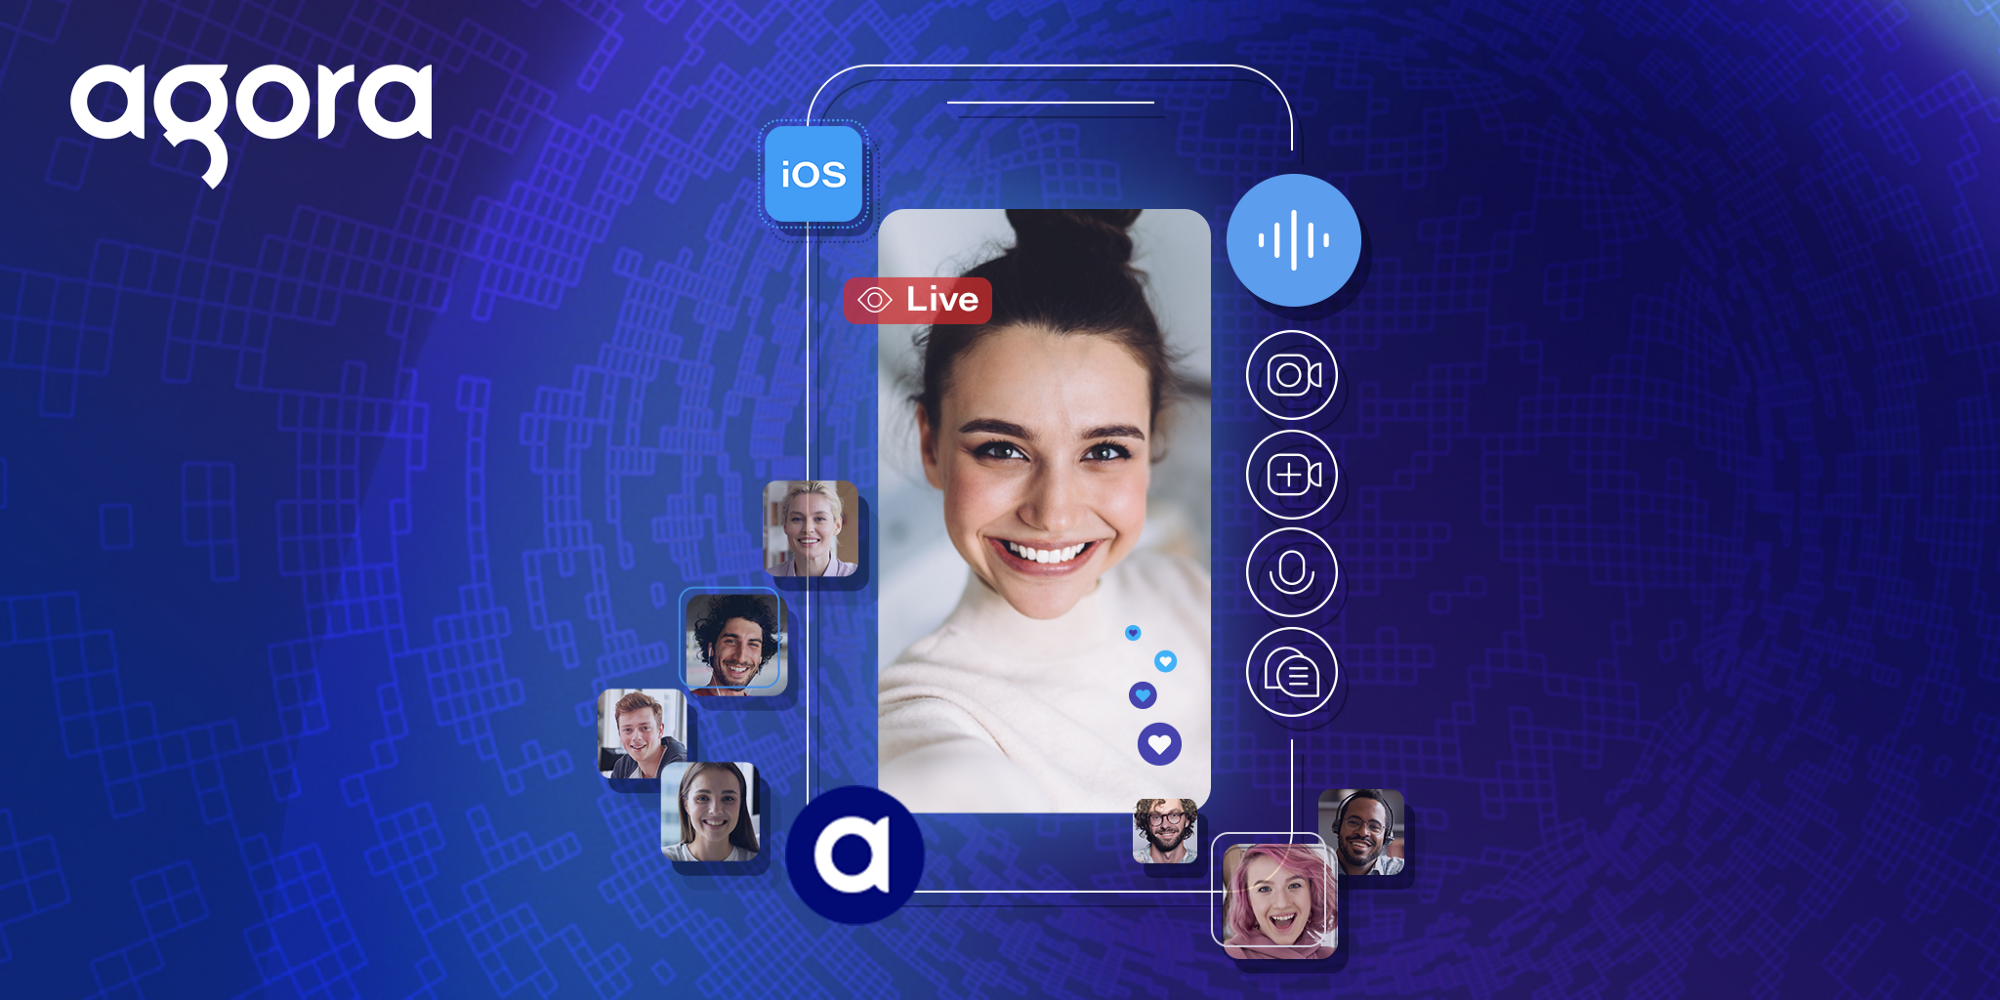 banner image, showing a live streaming app